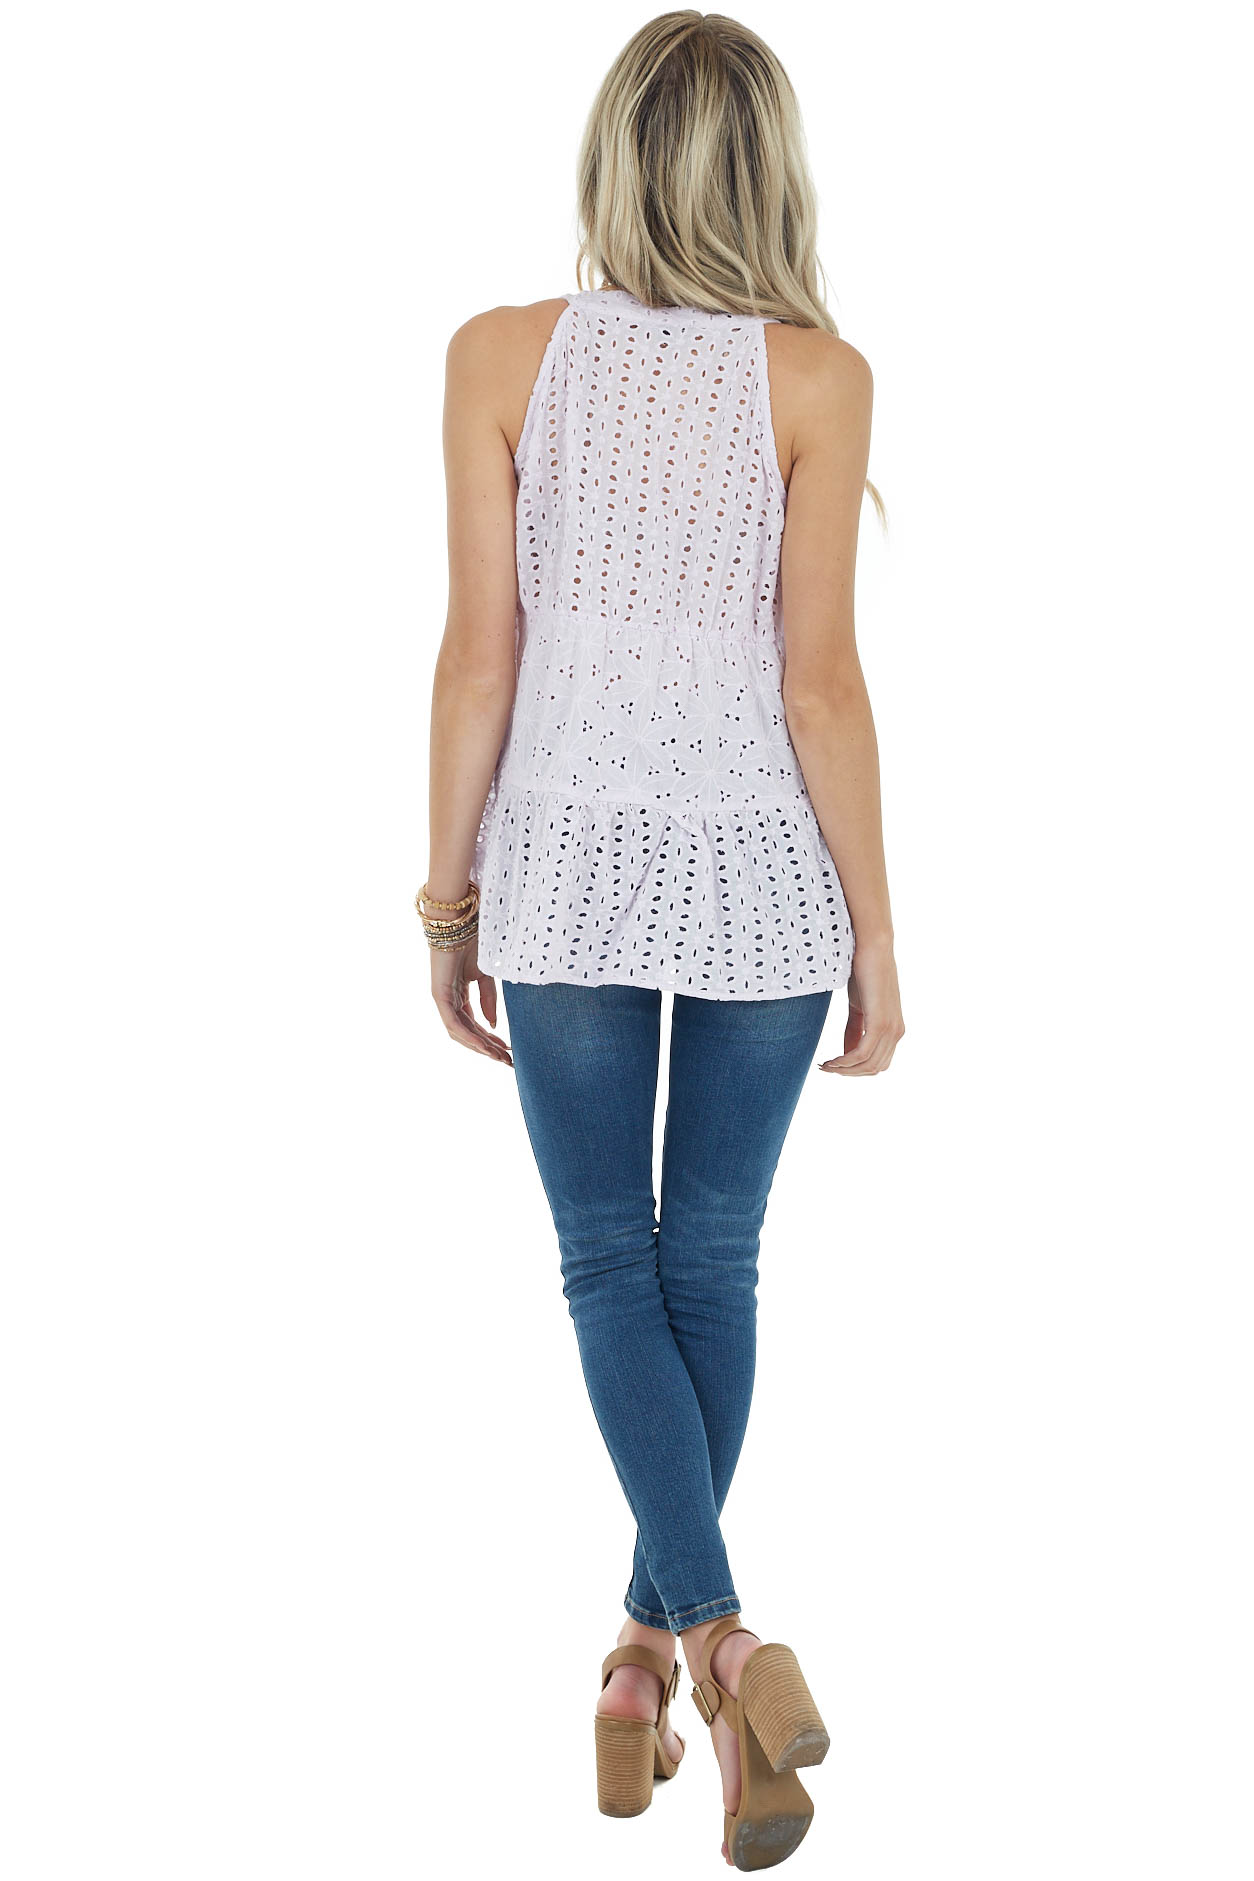 Lilac Tiered Eyelet Lace Sleeveless Top with Button Detail